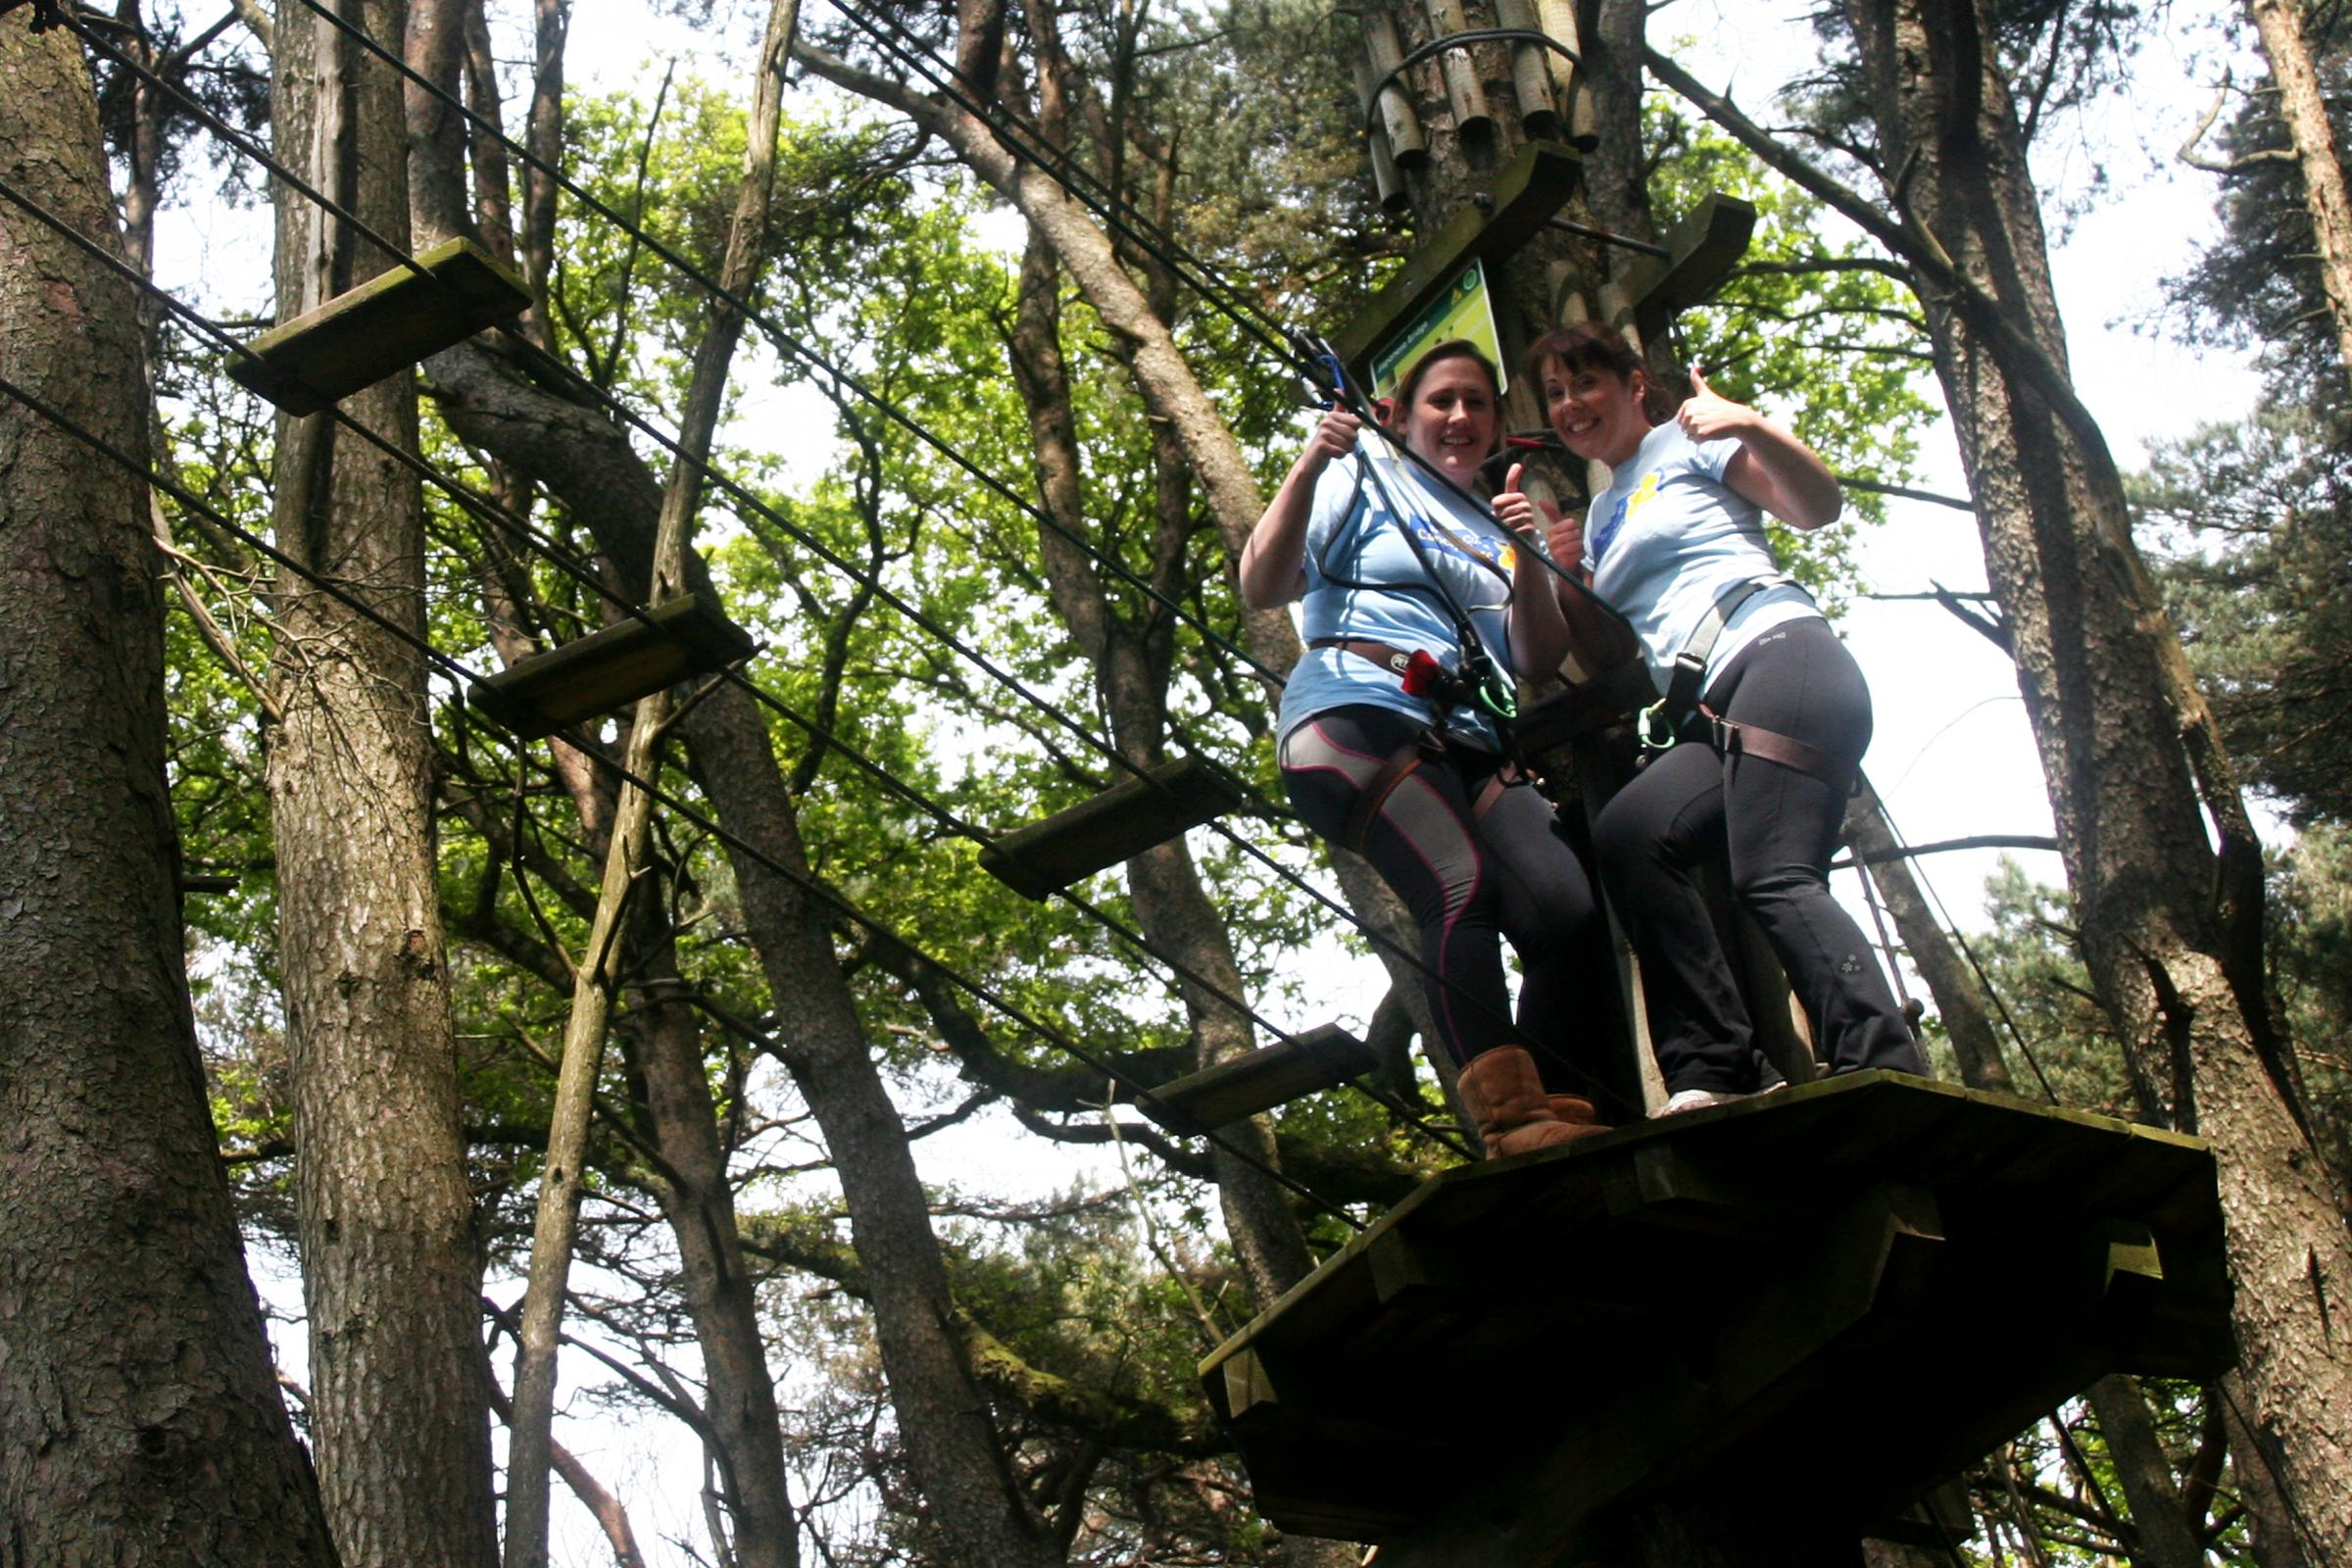 TREETOPS CHALLENGE: Helen Mulhern and Georgina Burke took to the tree tops at Go Ape in Margam Park